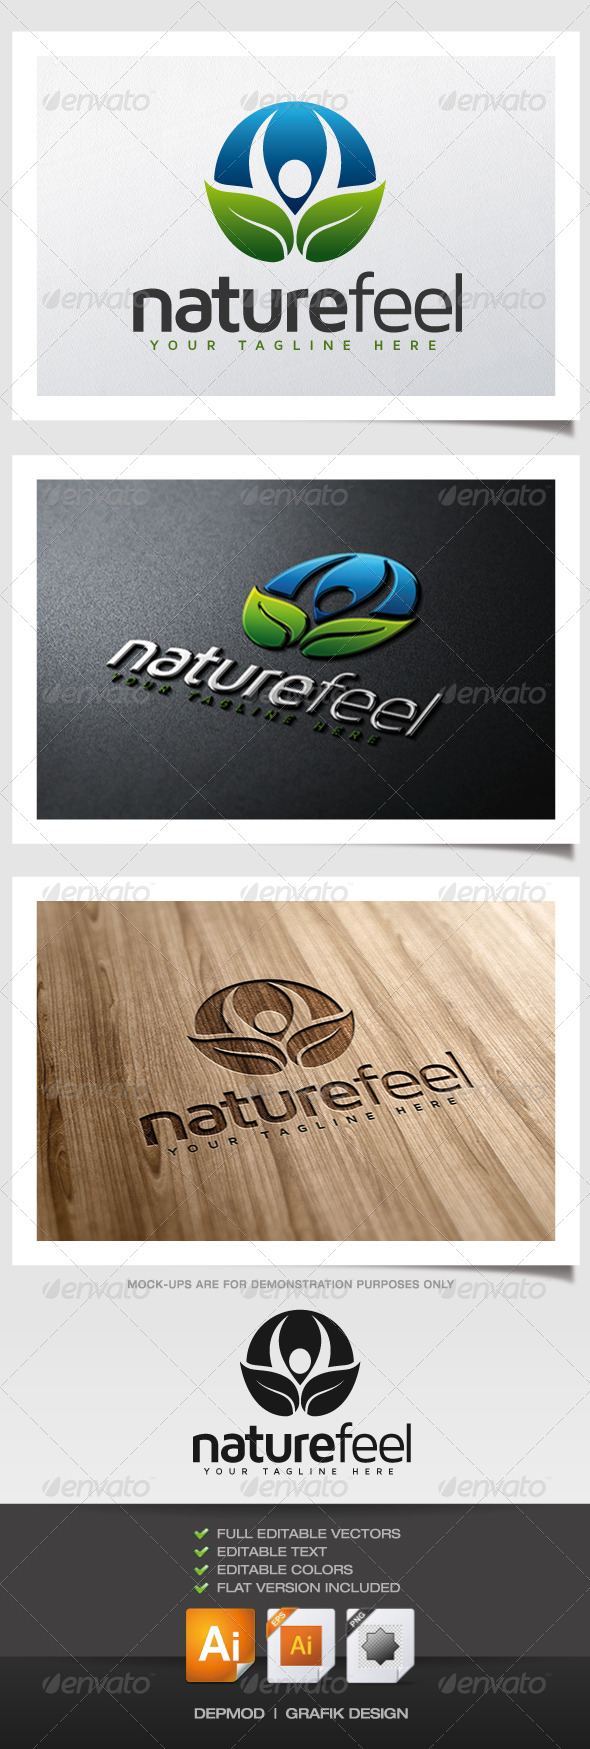 Nature Feel Logo - Nature Logo Templates